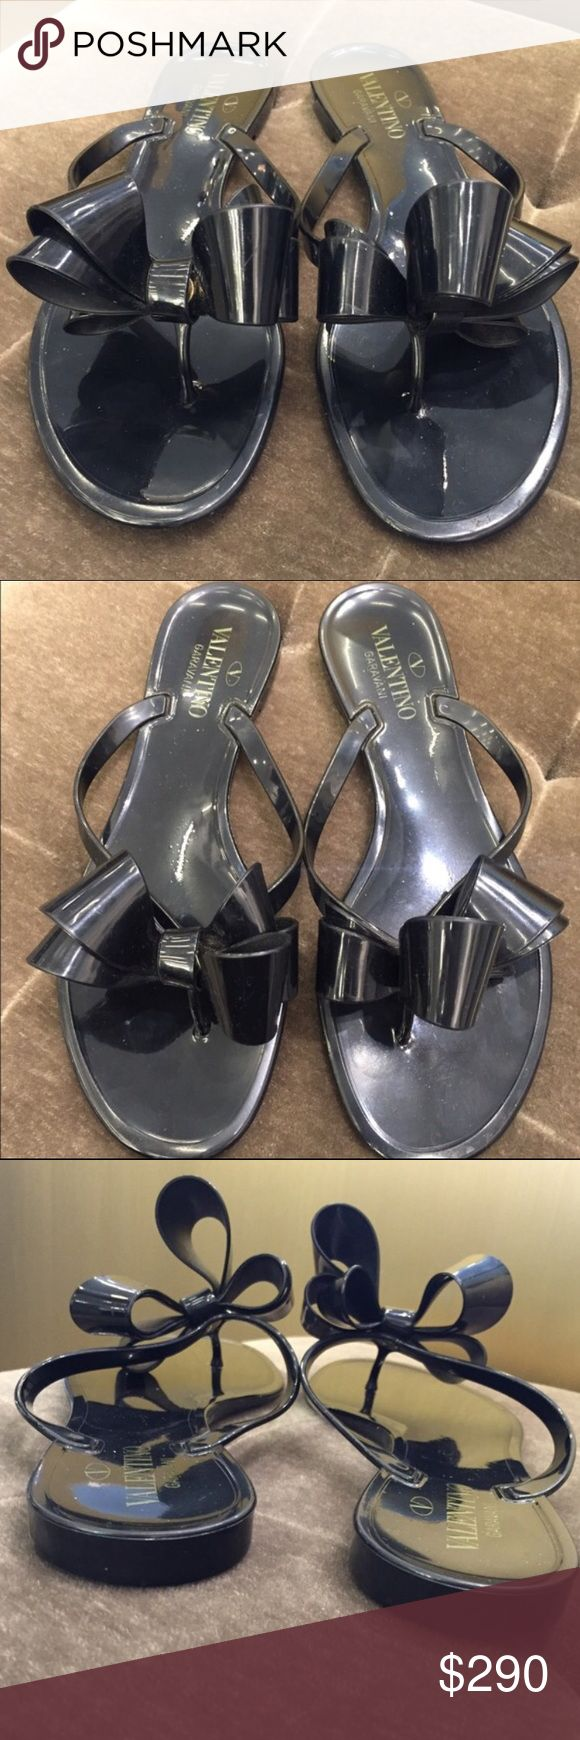 Valentino Bow Sandals 100% Authentic pre-owned Valentino Sandals. Doesn't come with box or dust bag.   ❌NO TRADES❌ ✅PRICE IS NEGOTIABLE✅ Valentino Shoes Slippers